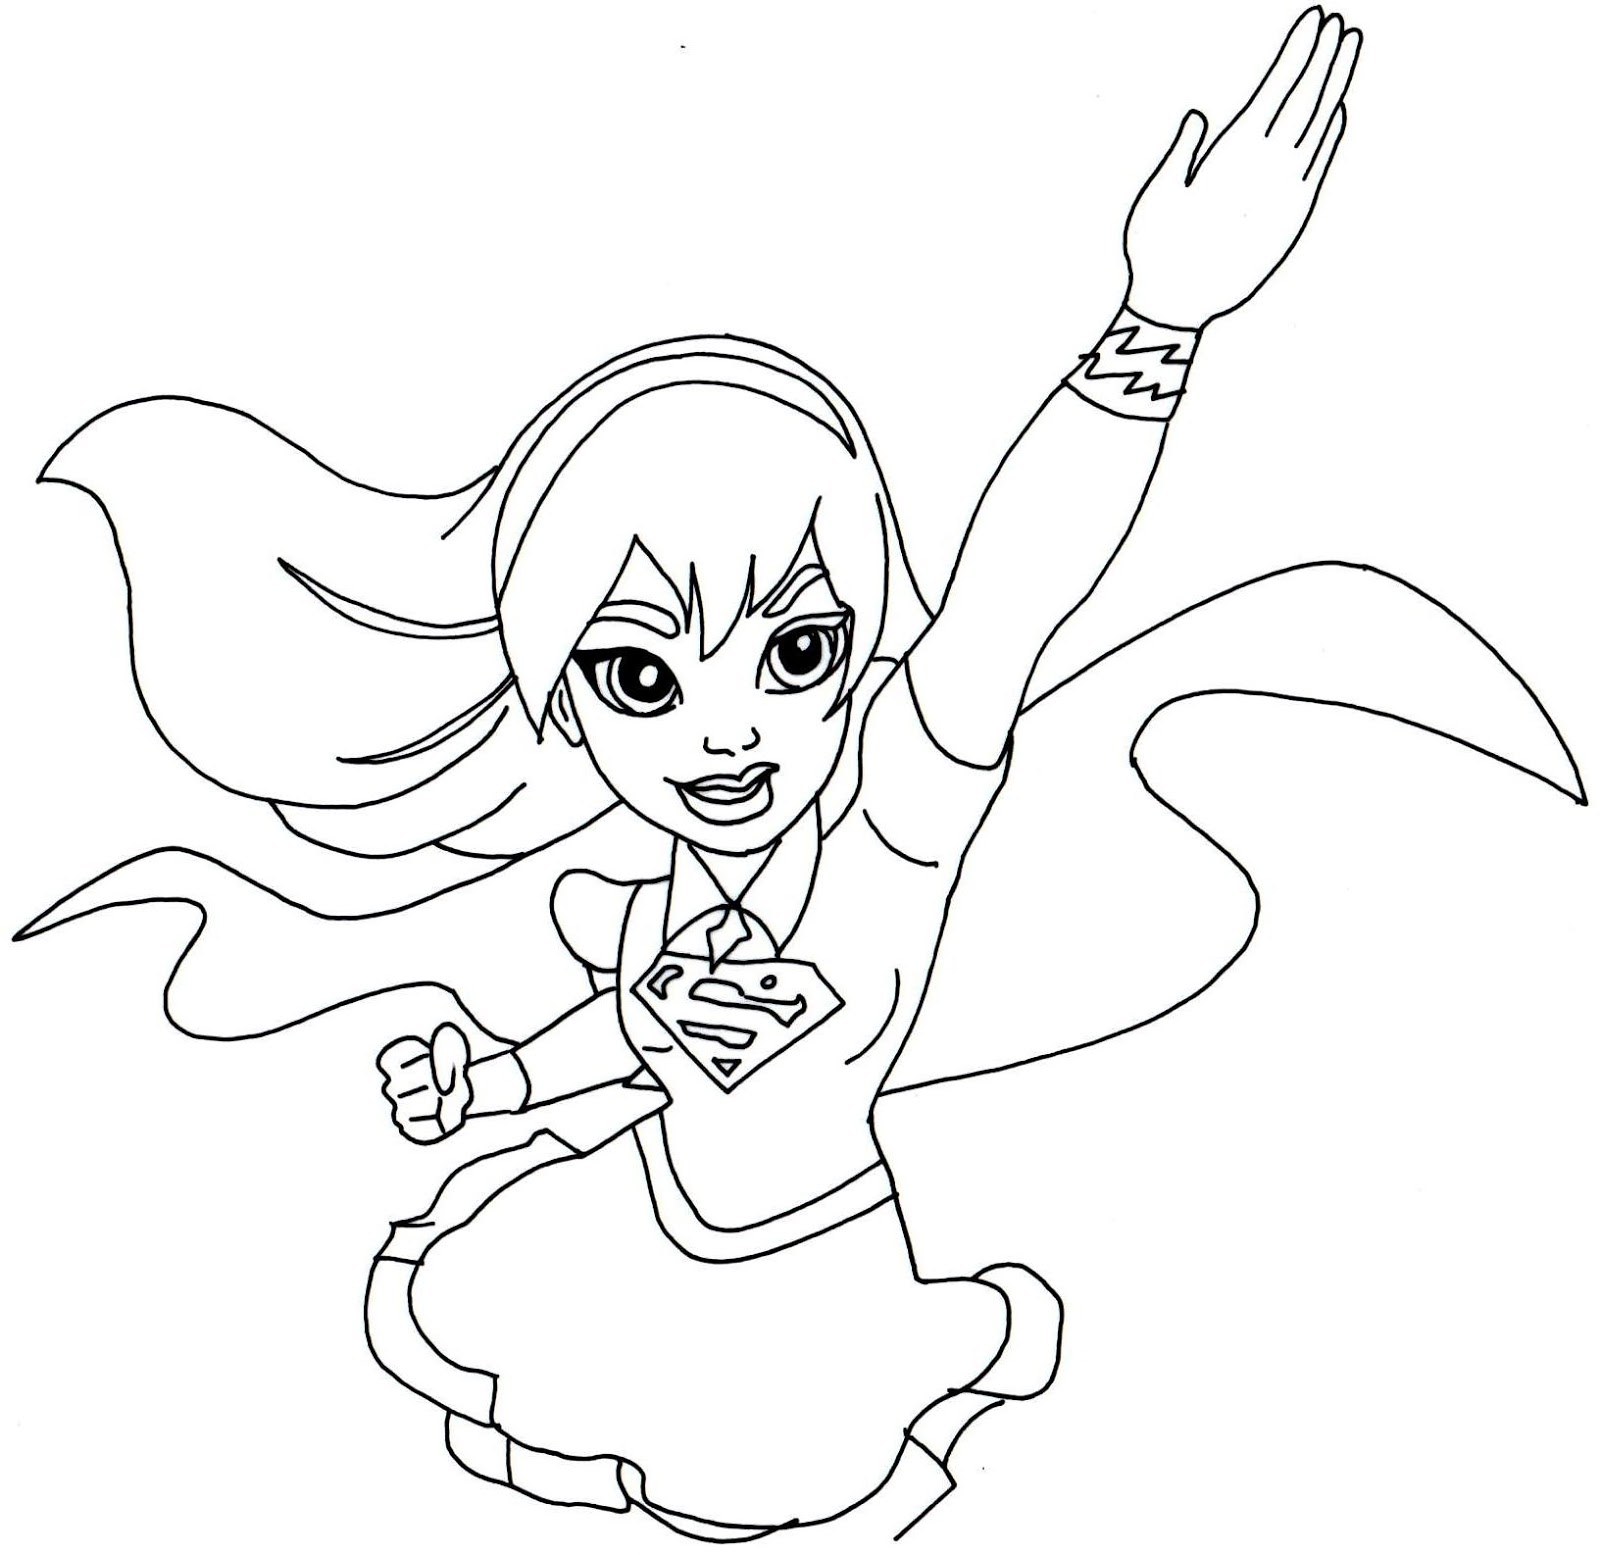 supergirl coloring page - supergirl coloring pages coloring home